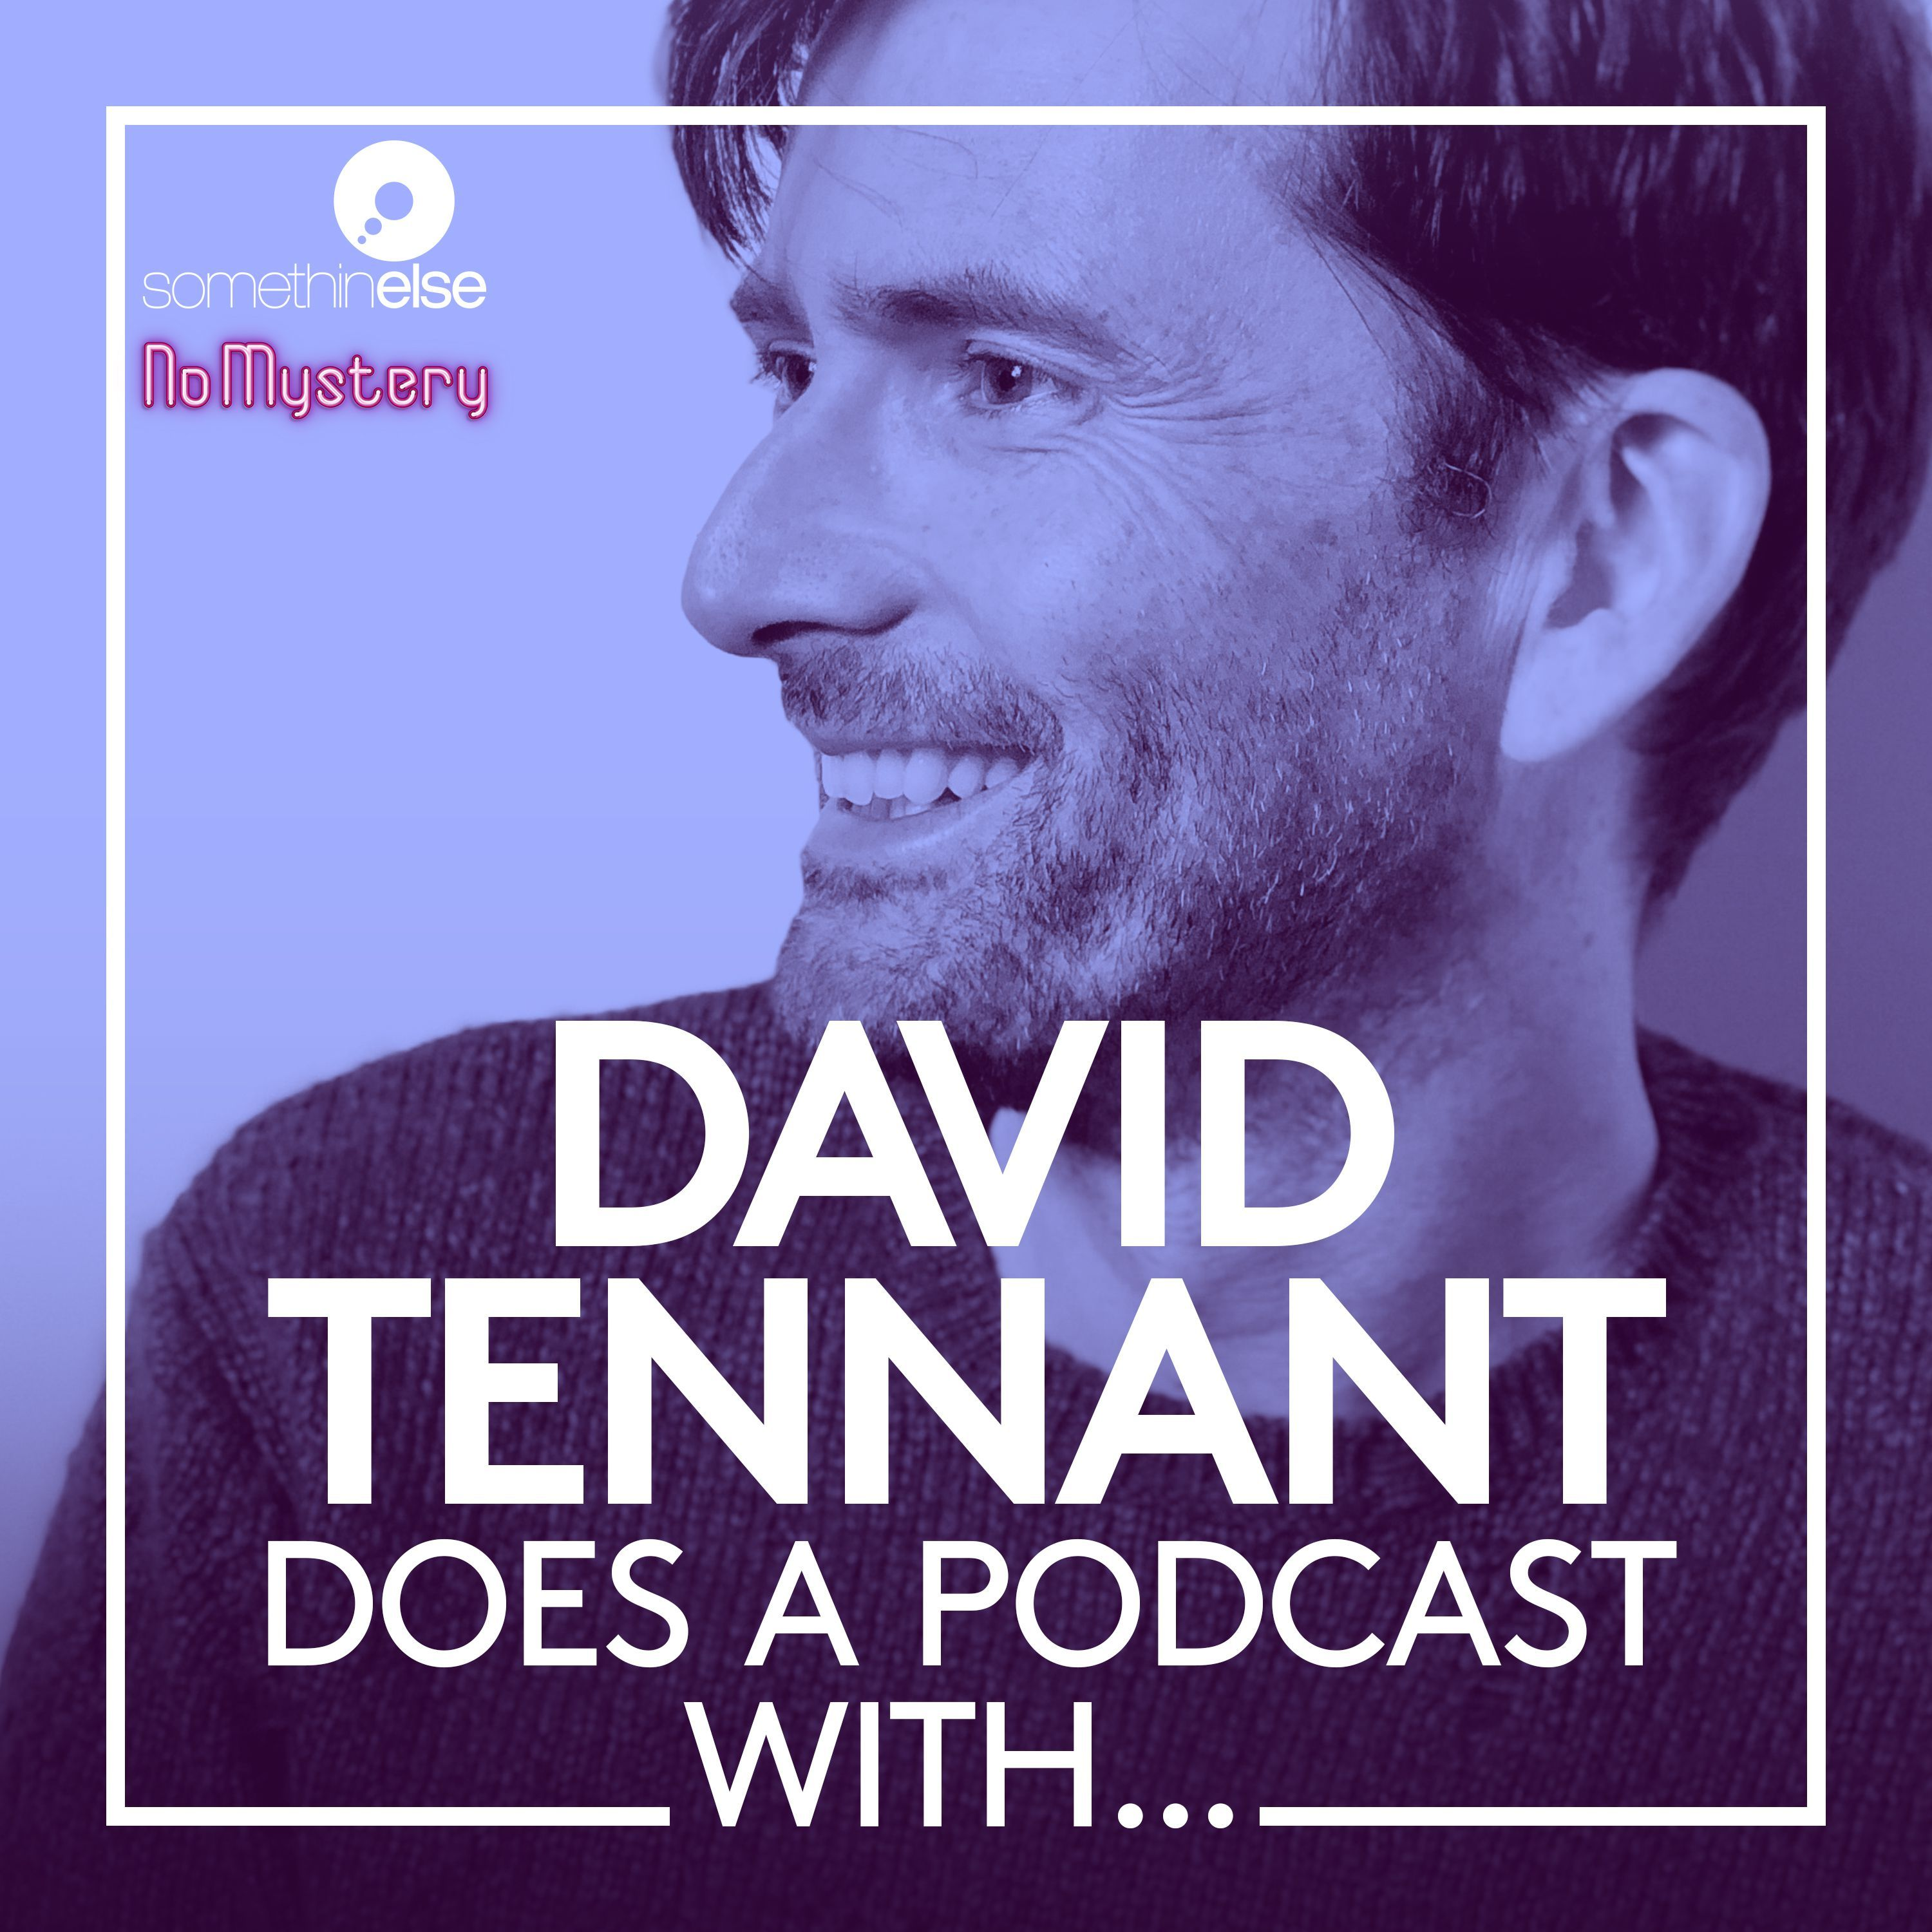 David Tennat does a podcast cover photo